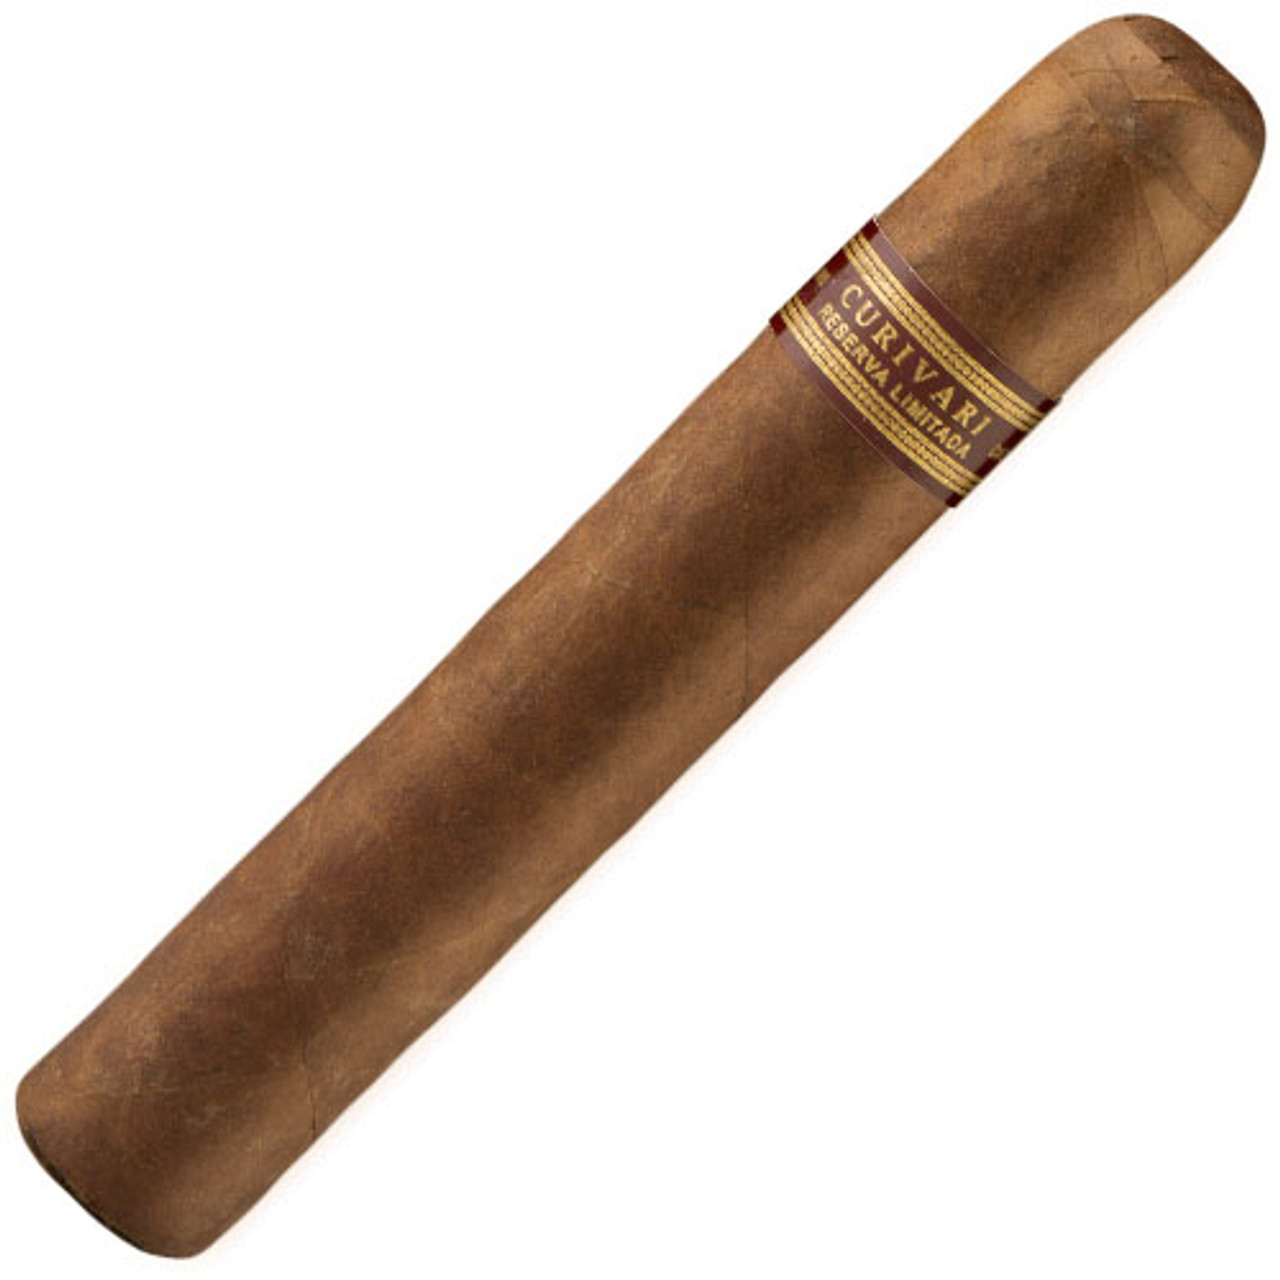 Curivari Reserva Limitada Cafe Café 60 Cigars - 5.5 x 58 (Box of 10)